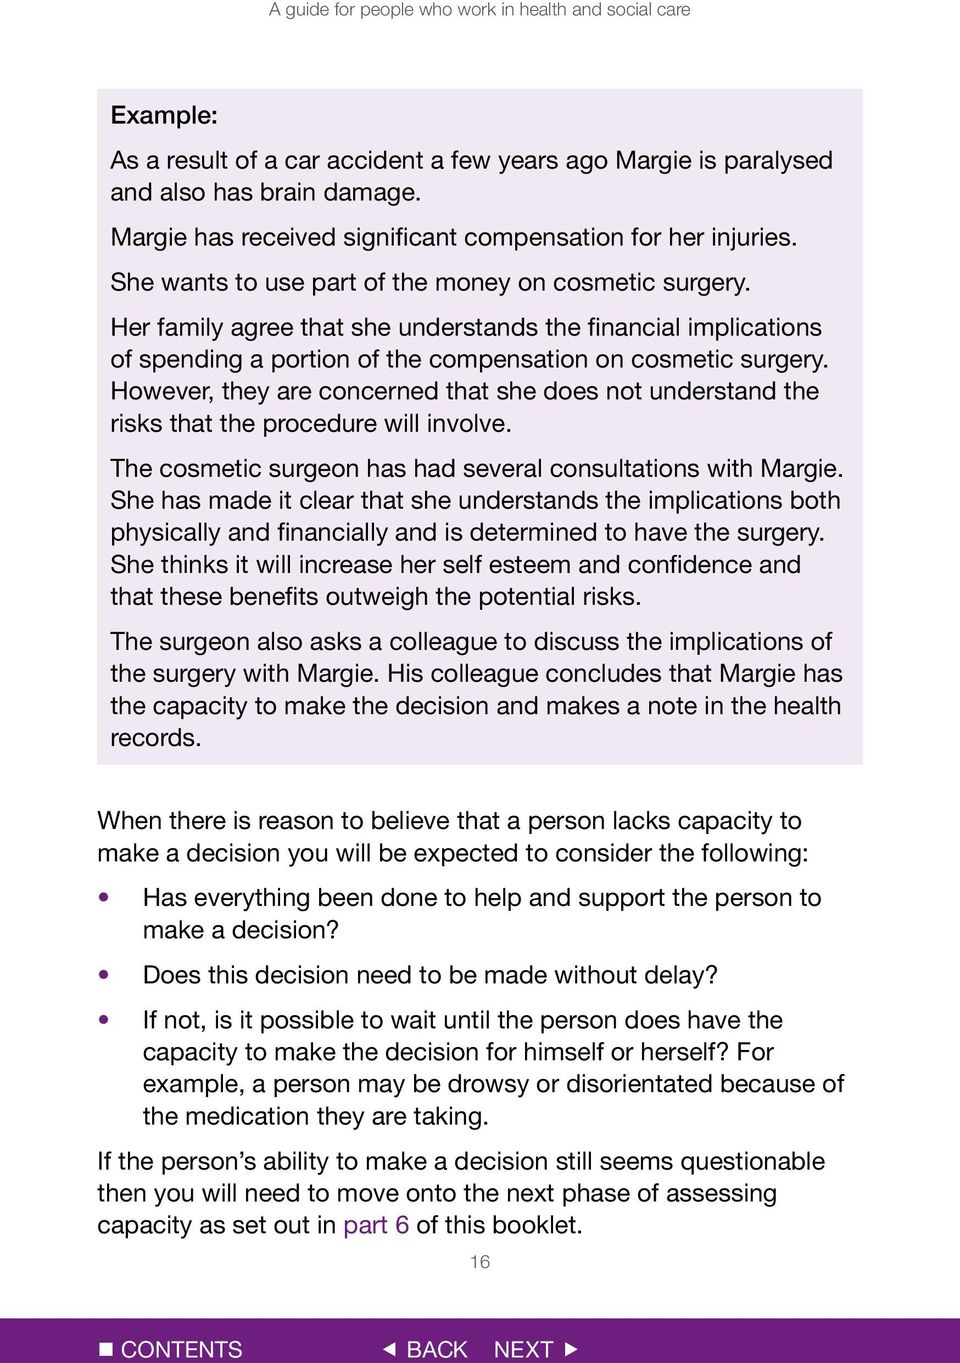 However, they are concerned that she does not understand the risks that the procedure will involve. The cosmetic surgeon has had several consultations with Margie.